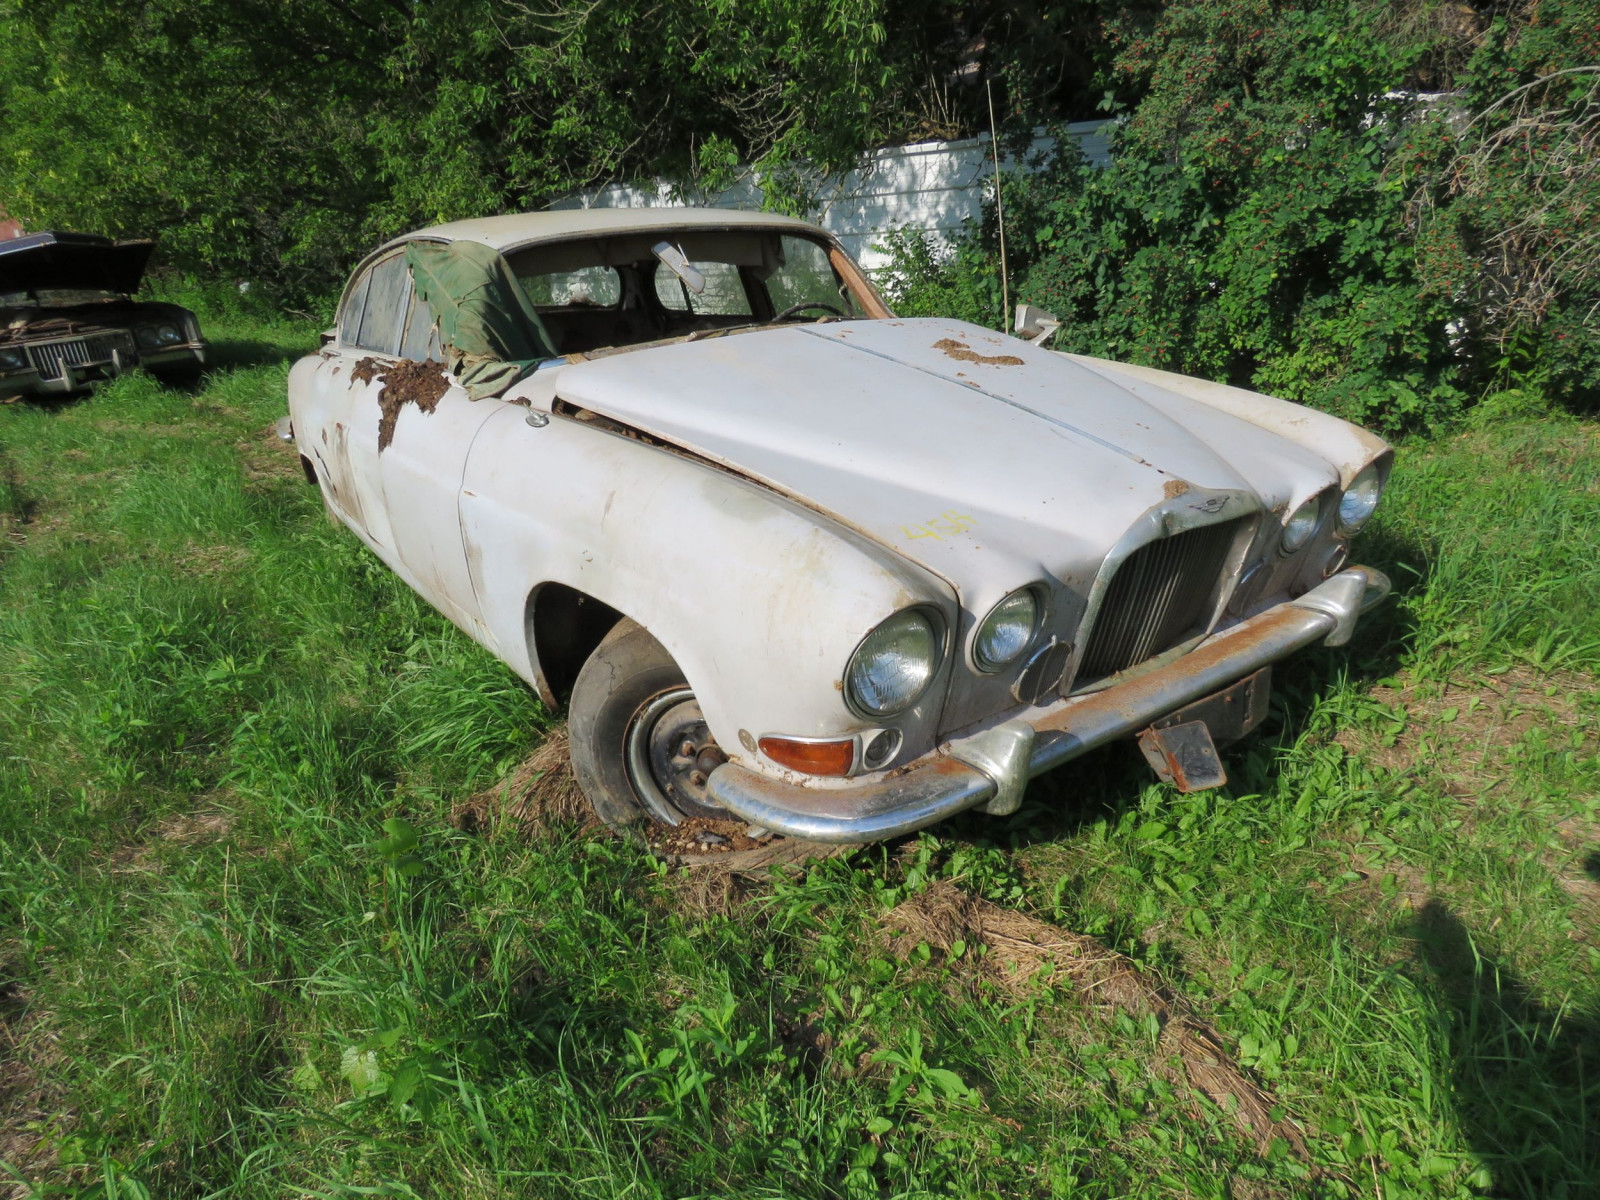 1965 Jaguar Mark X 4dr Sedan Project - Image 1